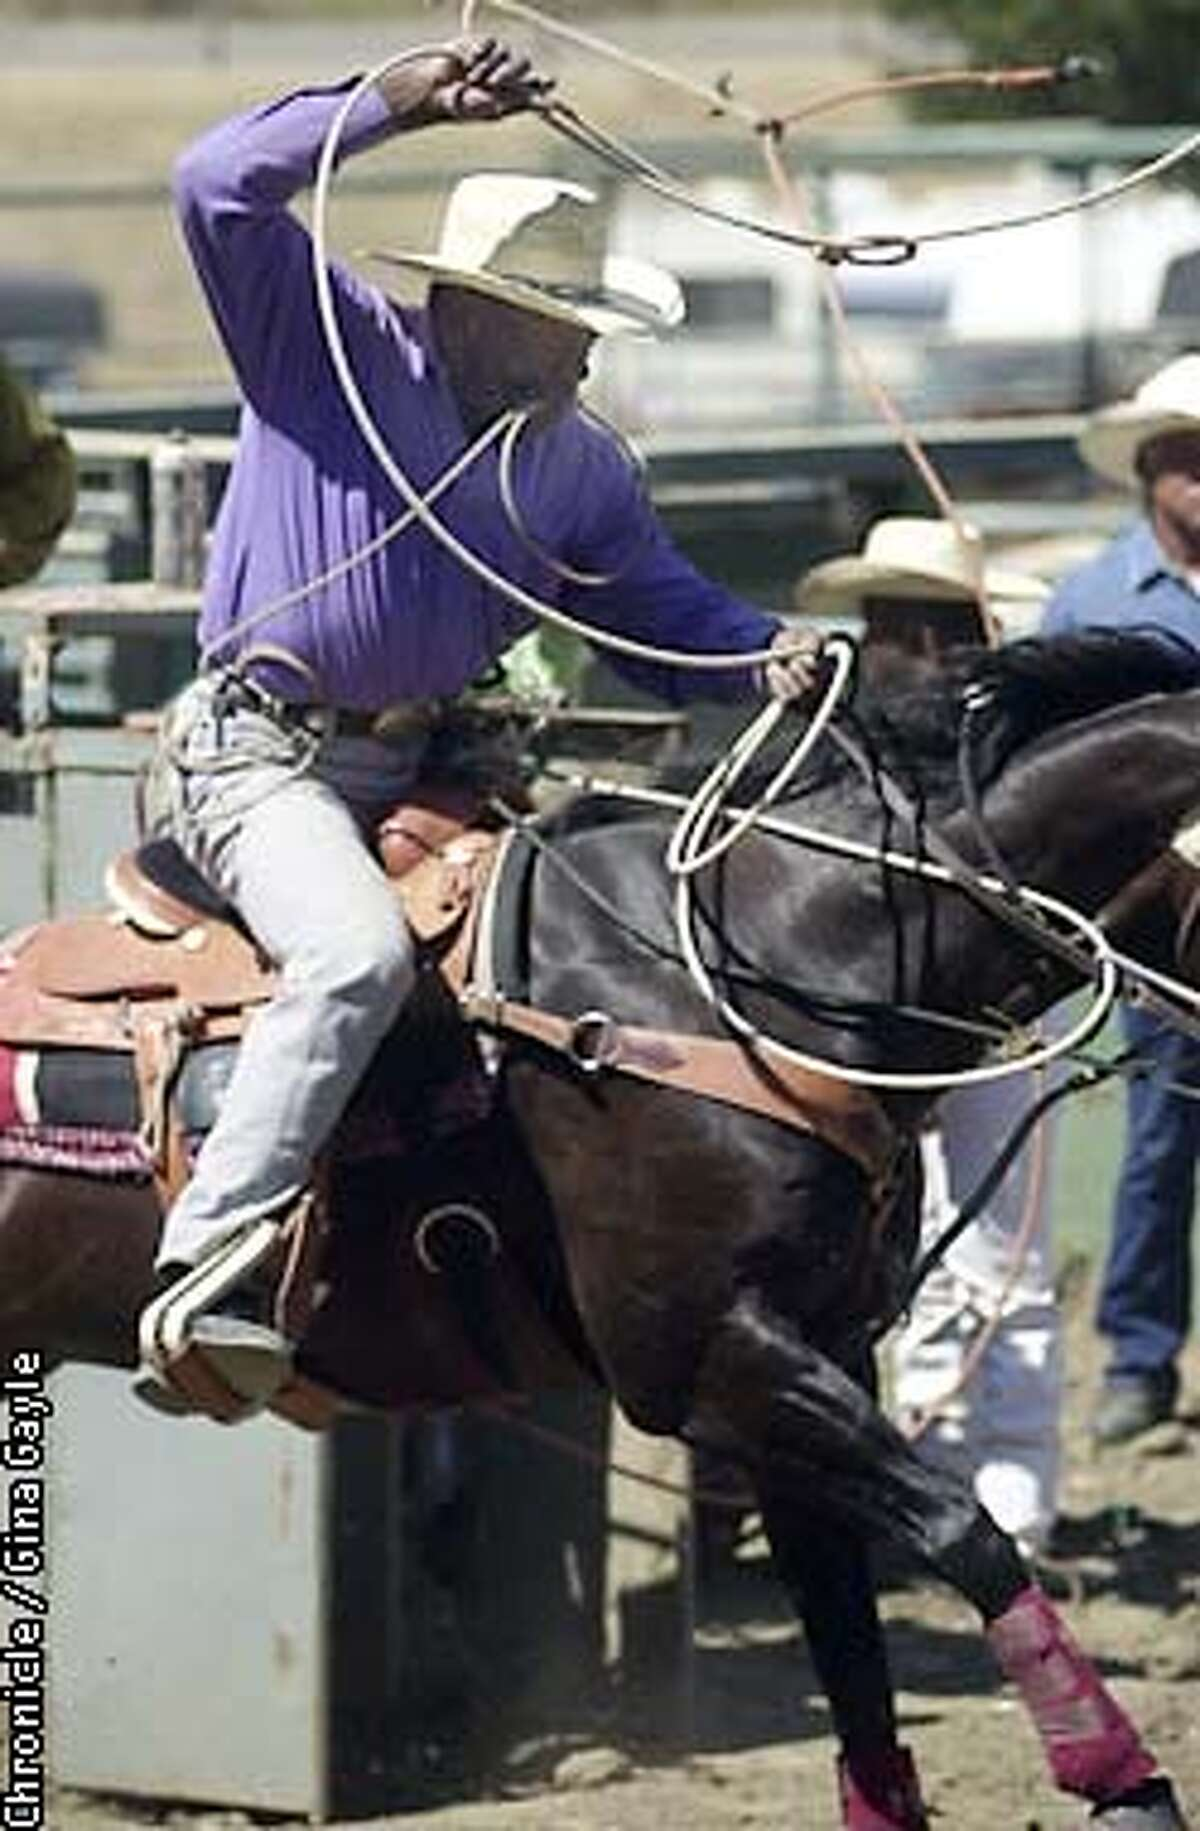 FJ Jones, 60, of California still has what it takes as he breaks out of the chutes in the calf roping event at the recent Bill Pickett Invitational Rodeo at the Rowell Ranch Rodeo Park in Hayward. Photo by Gina Gayle/The SF Chronicle.